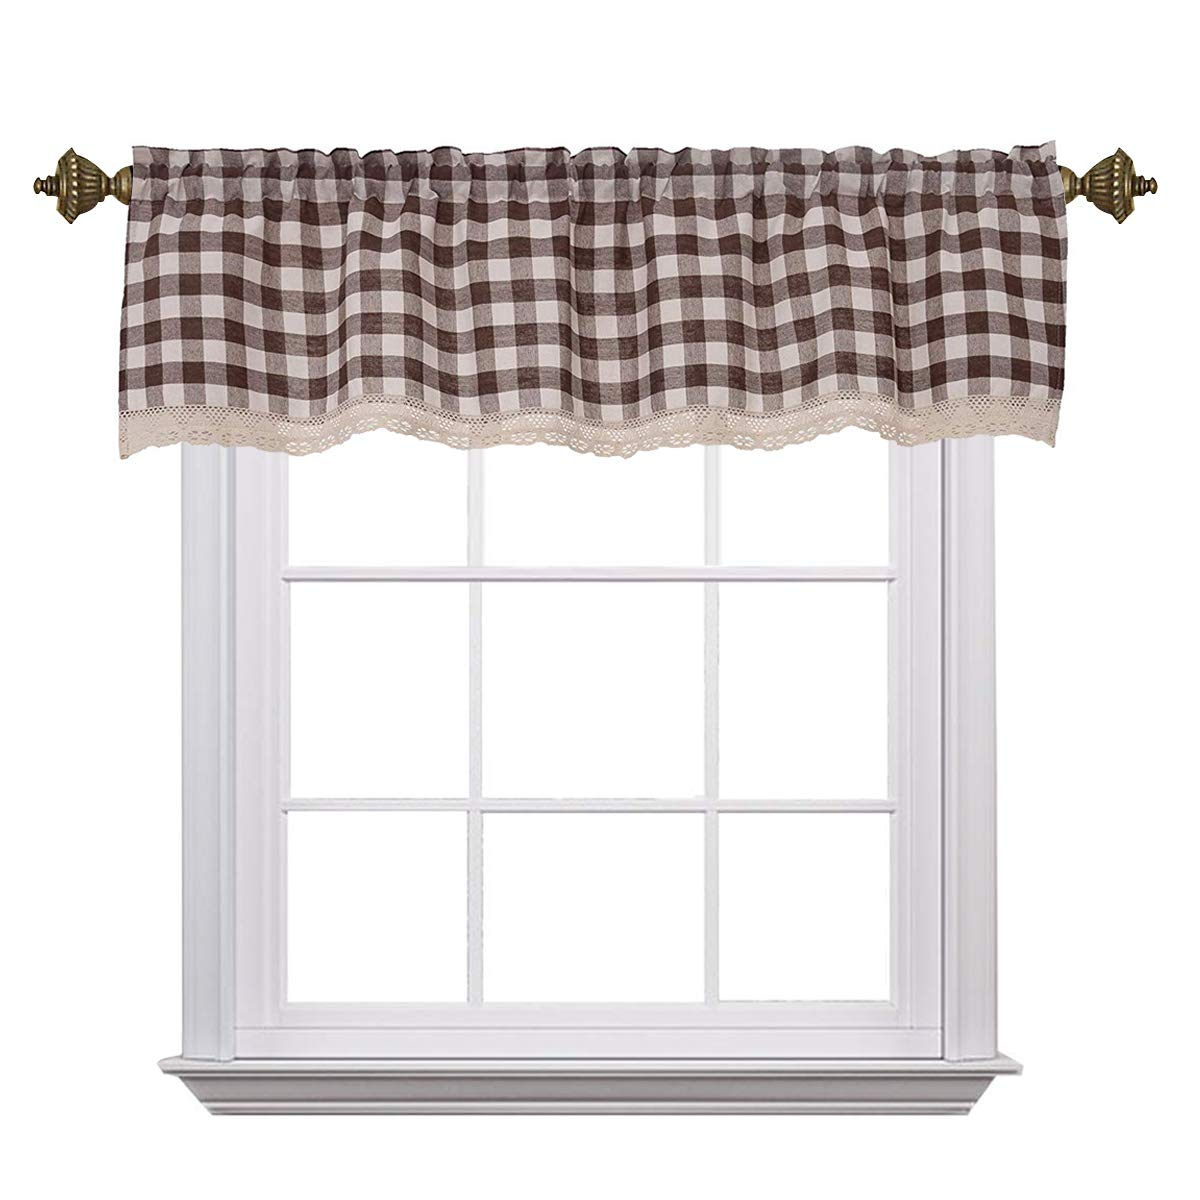 Curtain Valances for Windows Gingham Cotton Blend Window Curtains for Kitchen Living Dining Room 58 x 15 inches Rod Pocket 1 Plaid Valance Coffee